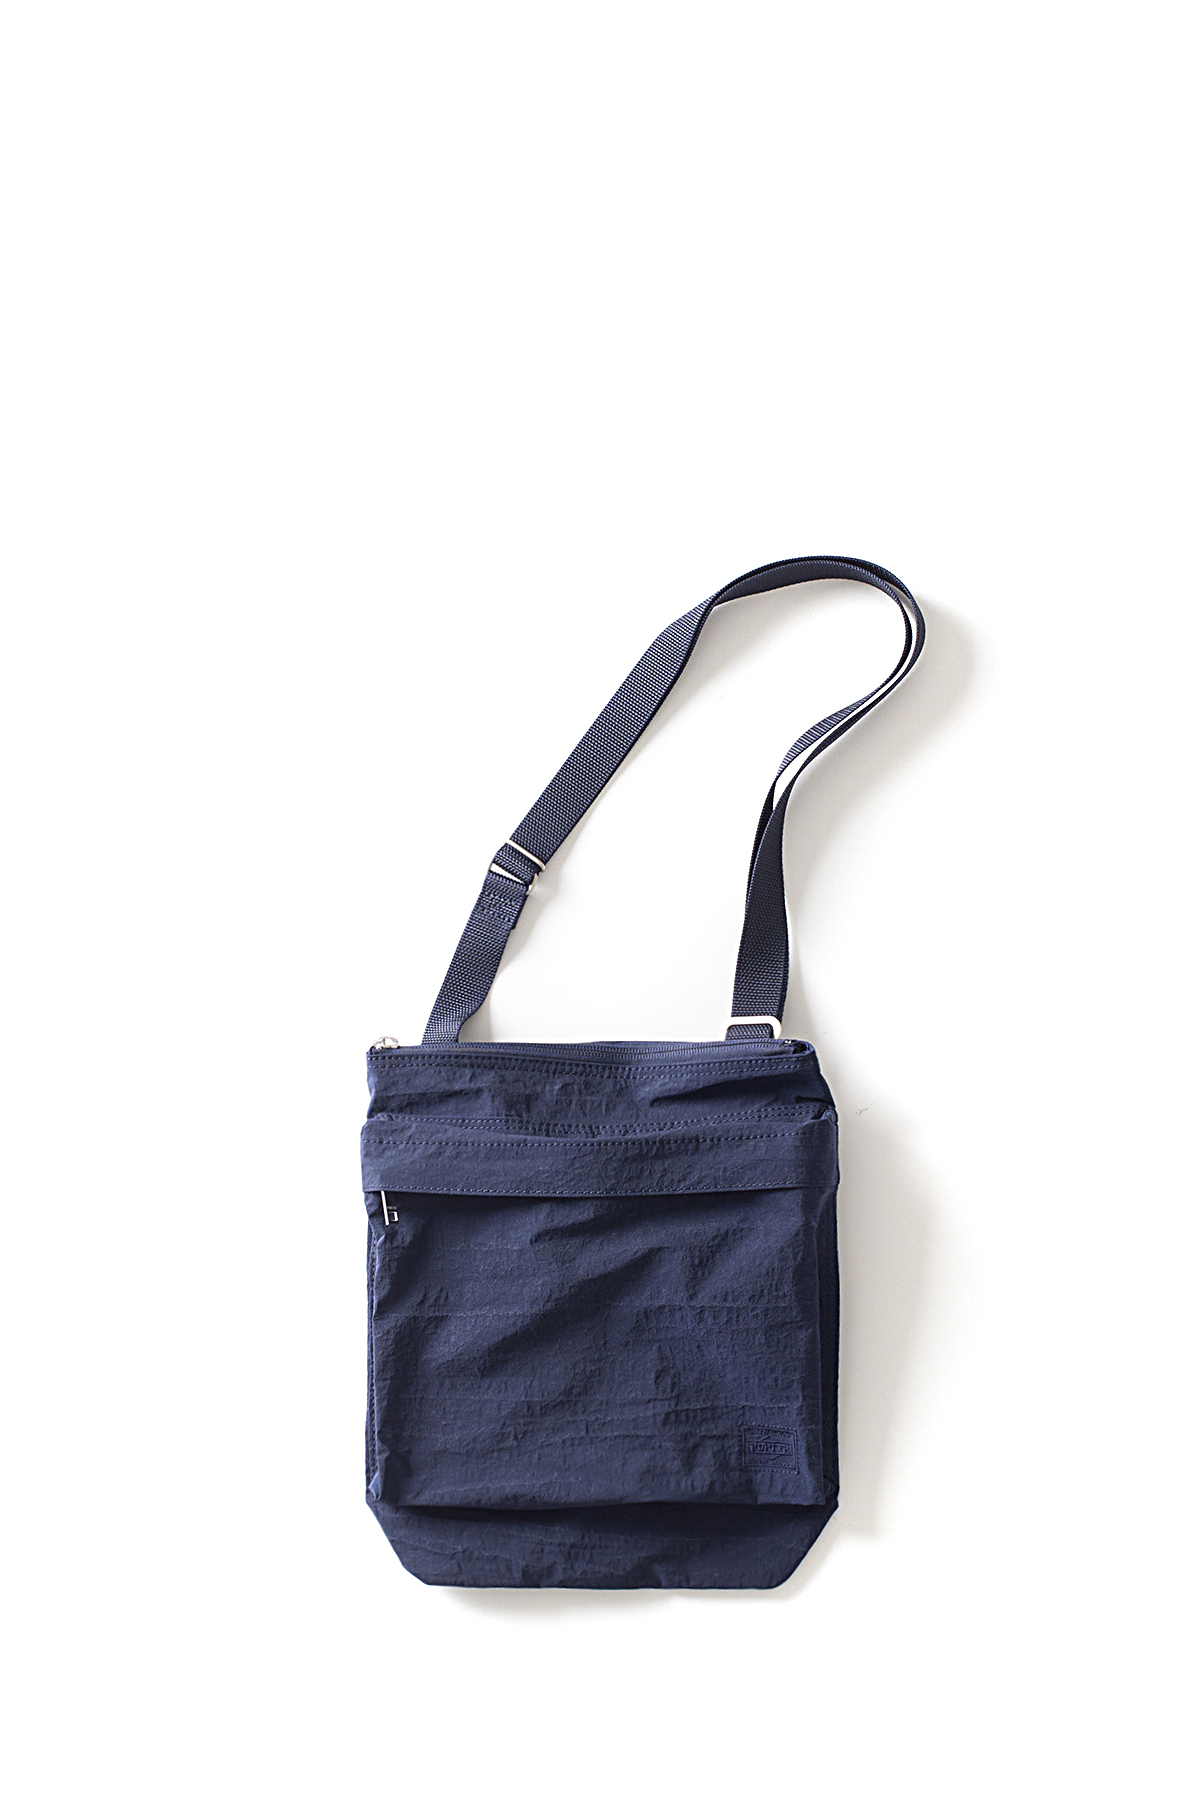 WHITE MOUNTAINEERING x PORTER : Musette (Navy)